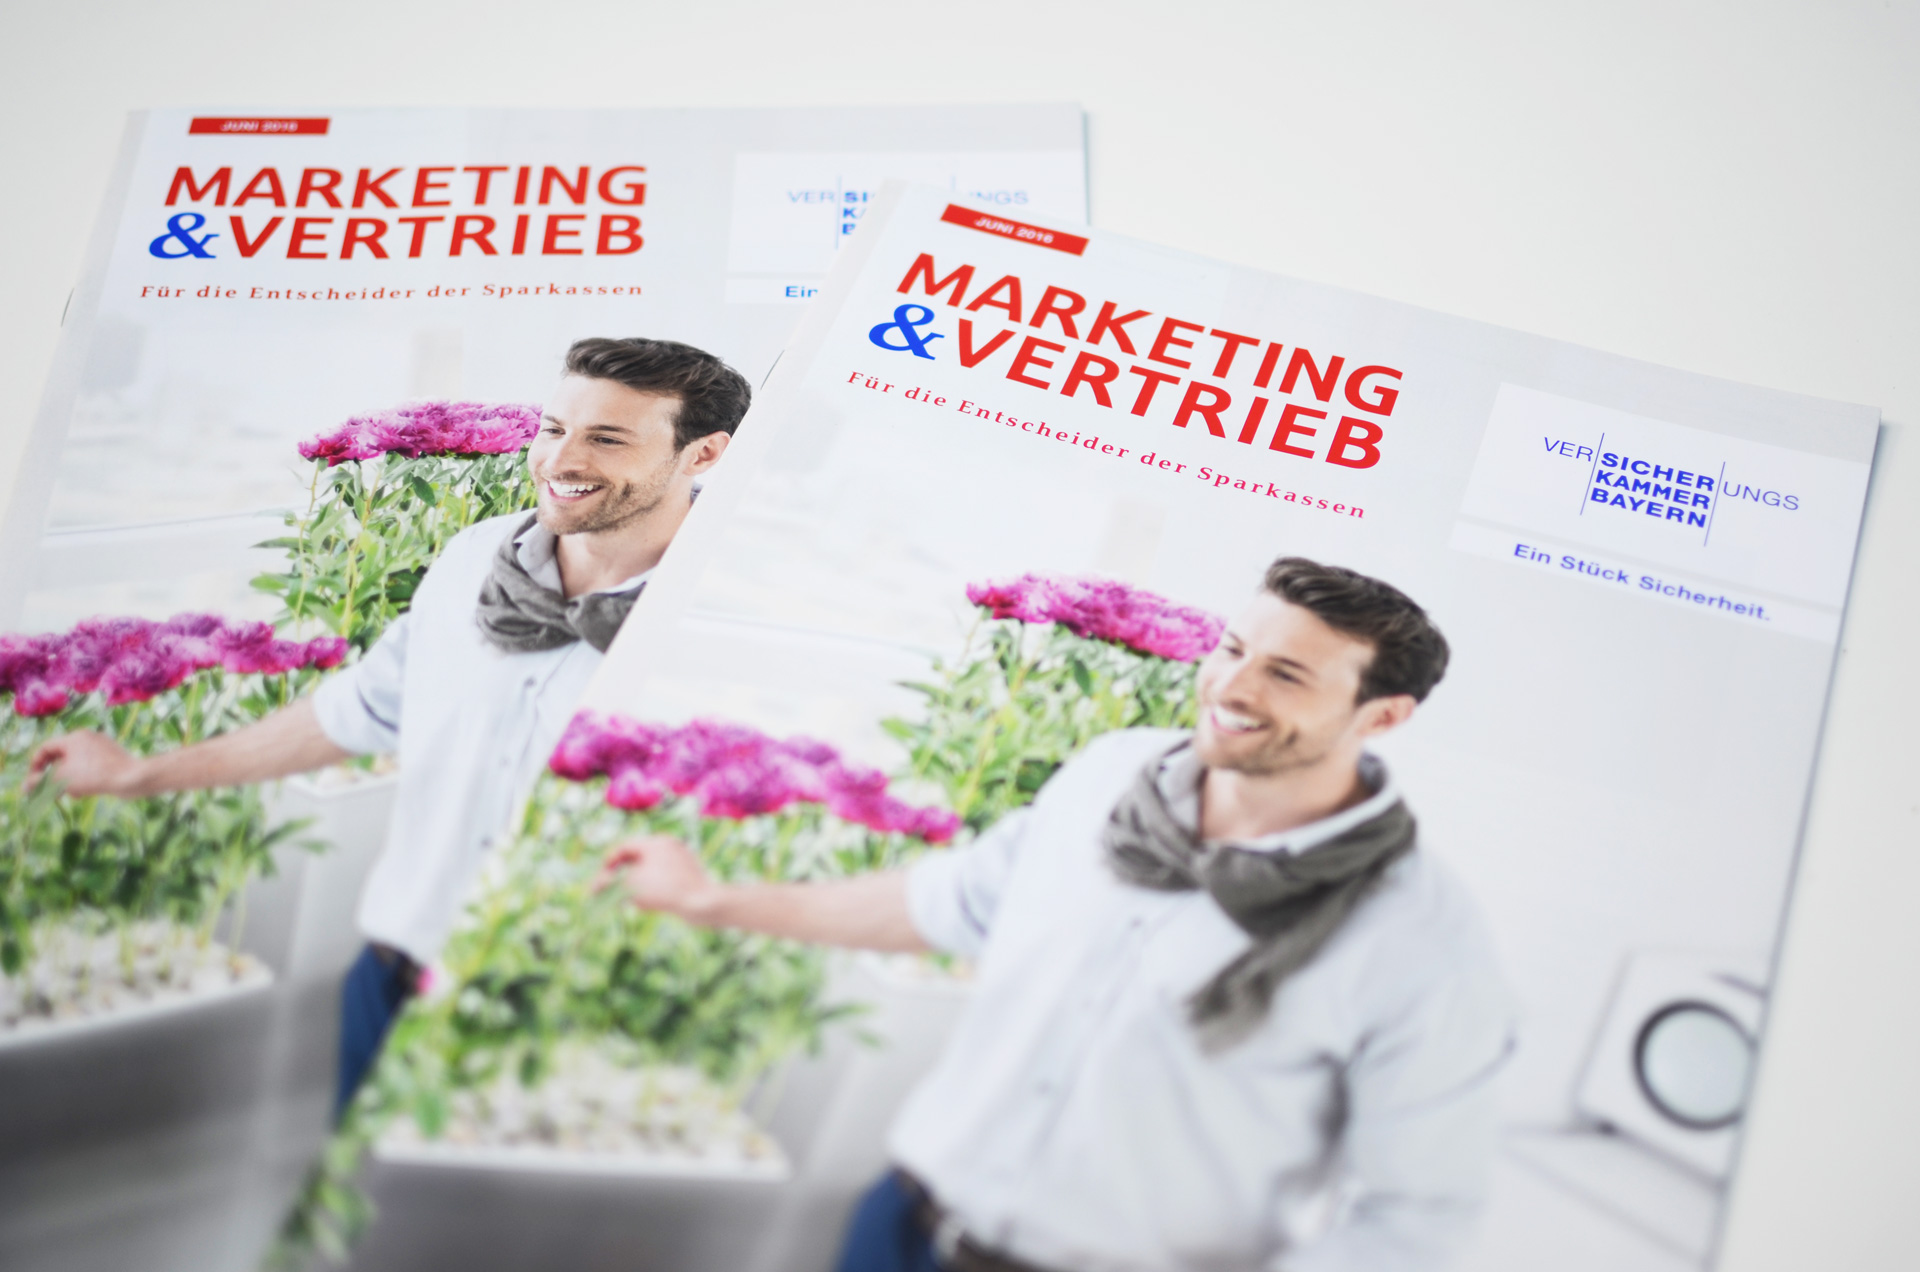 VKB_Marketinggestaltung_2